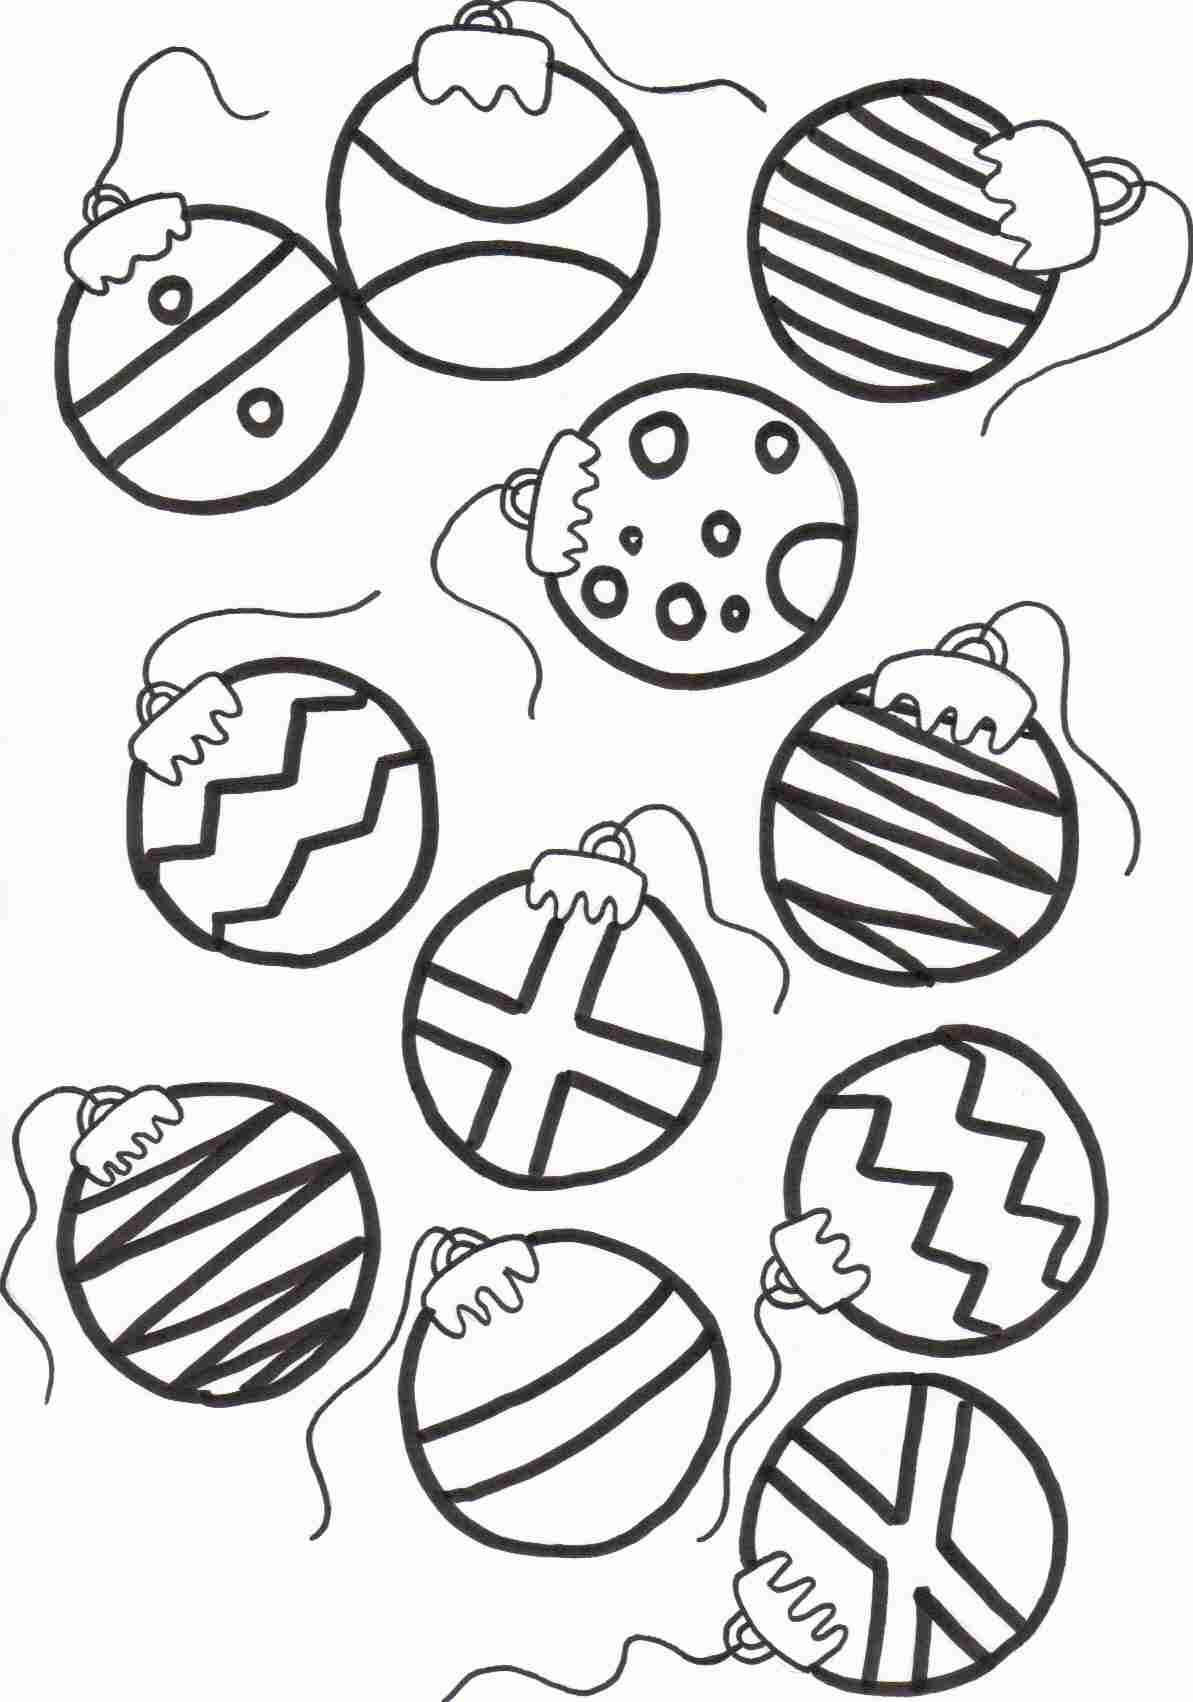 Christmas Drawing Designs at GetDrawings.com | Free for personal use ...